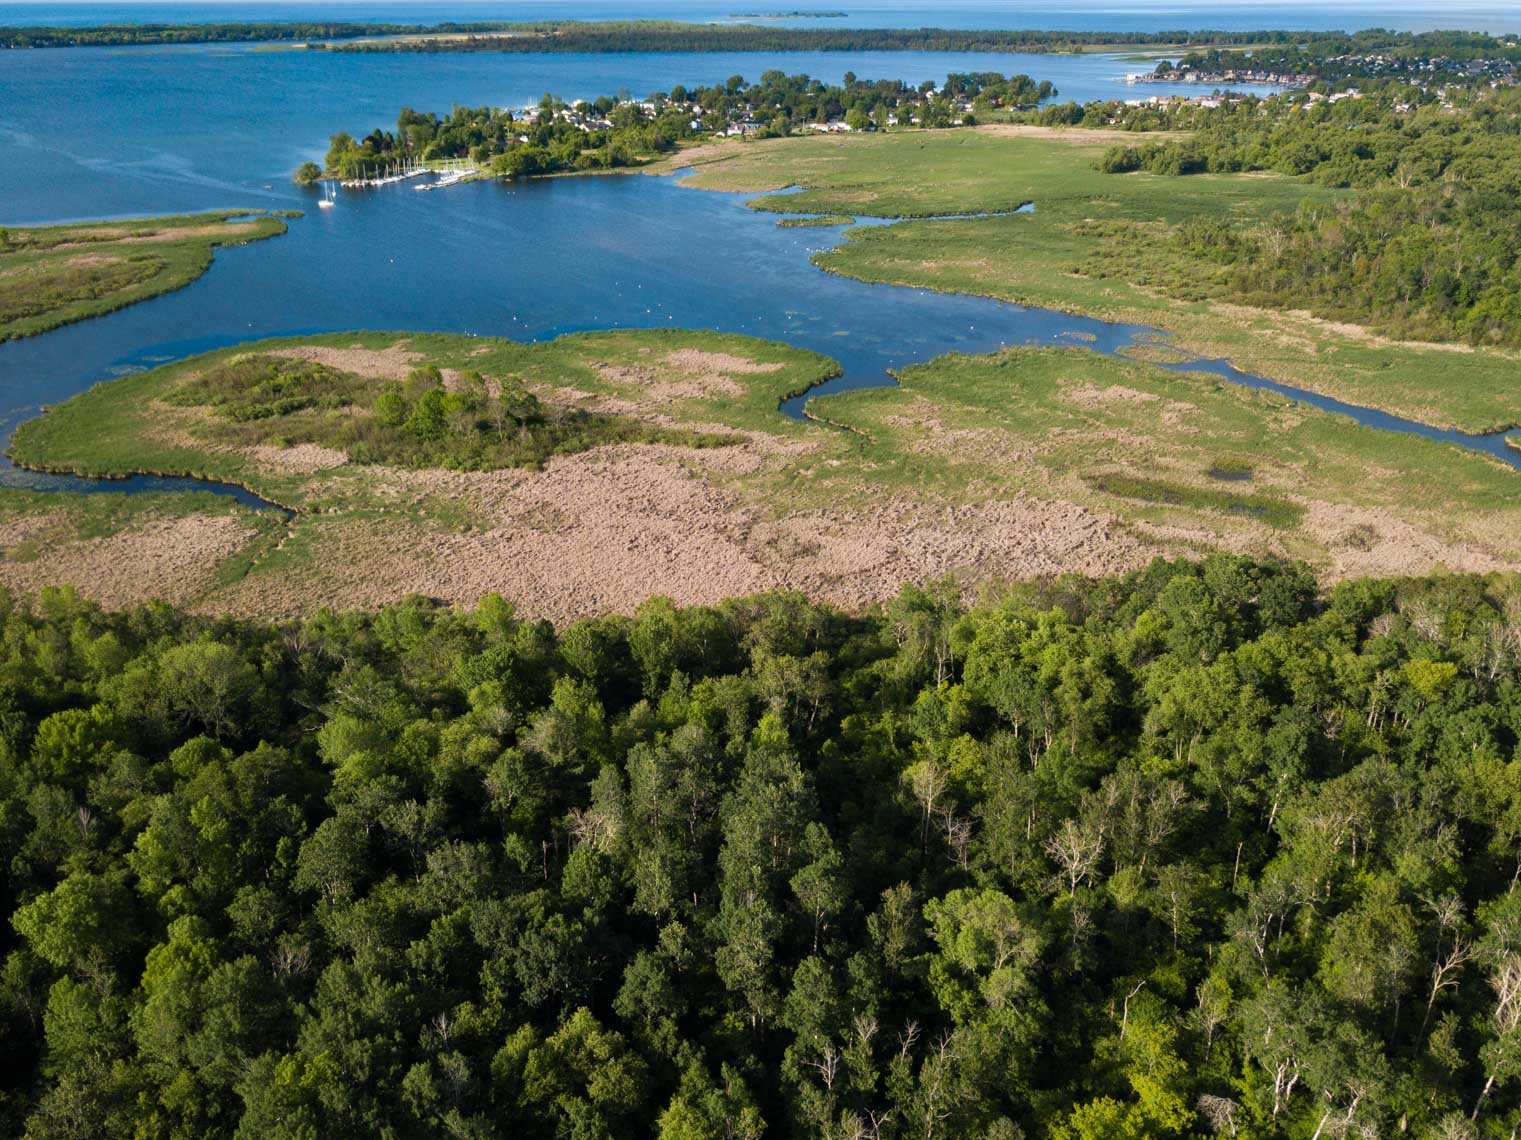 Aerial view of a forest and wetland on the coast of Lake Ontario in Brighton